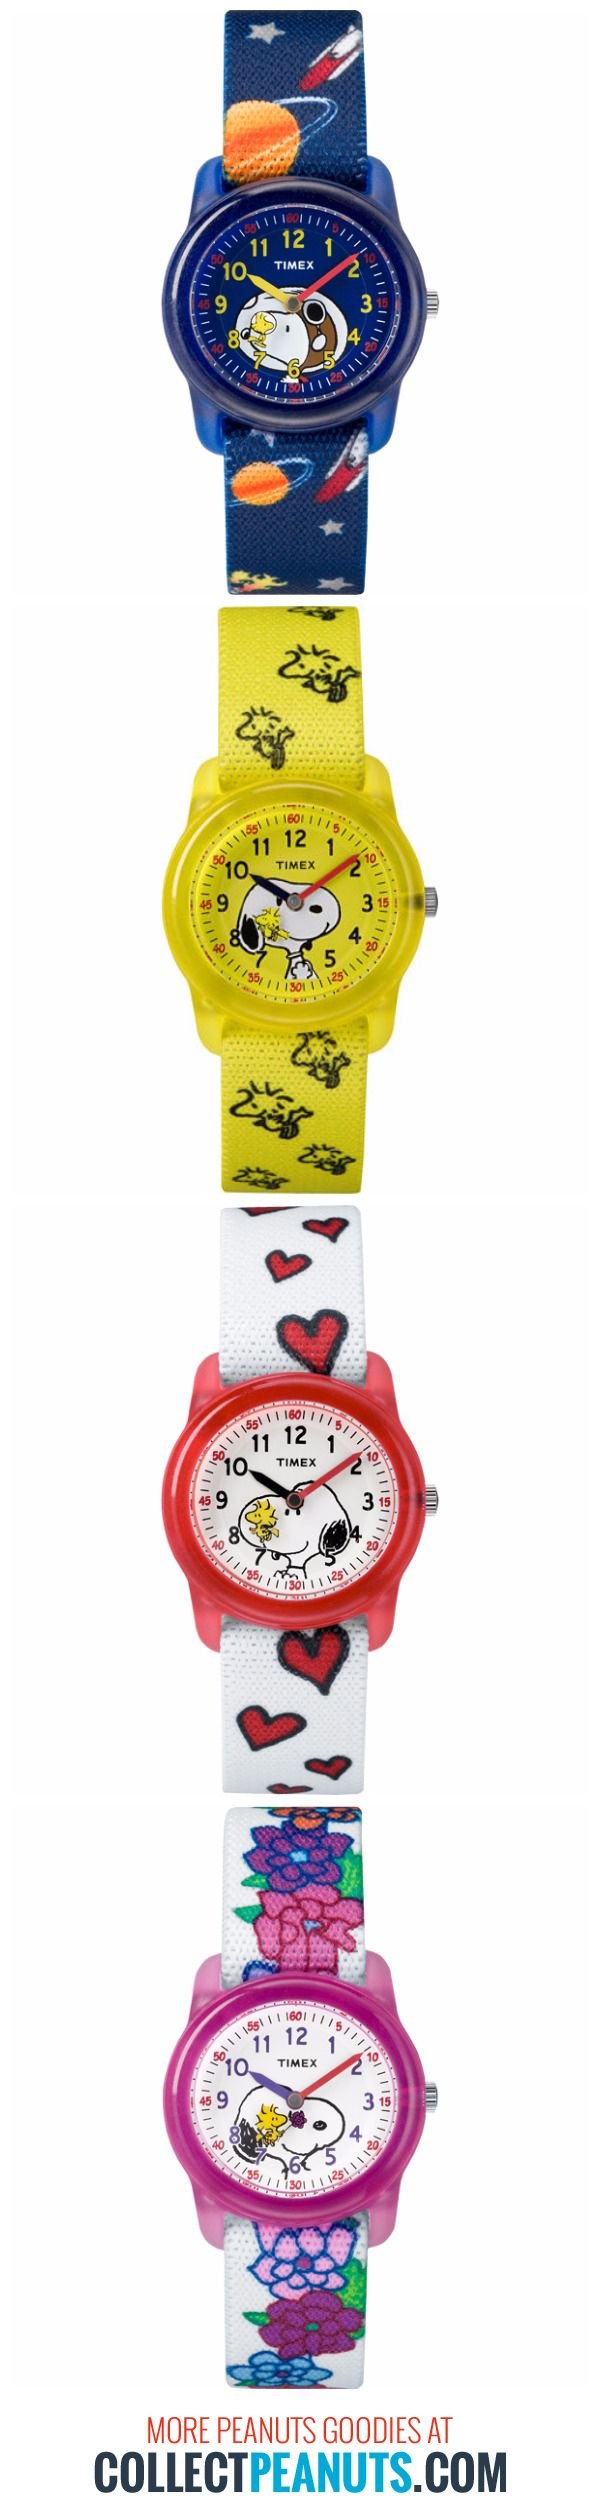 Spend some time with your favorite Peanuts characters! Shop Charlie Brown, Snoopy, Woodstock, Linus and Lucy Timex watches and help support CollectPeanuts.com.